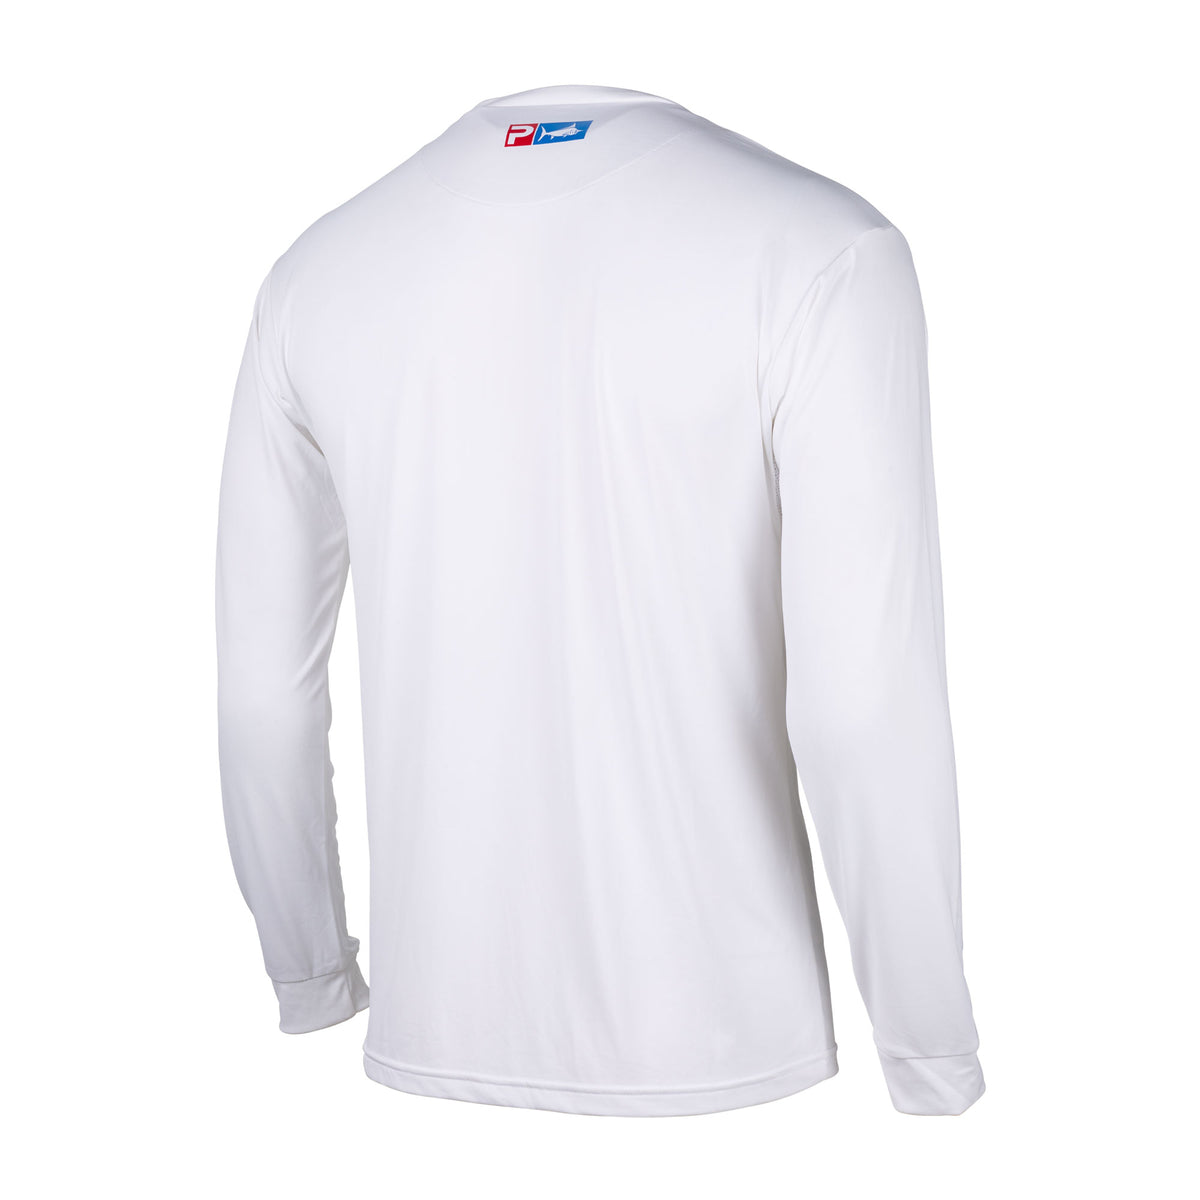 Aquatek Long Sleeve Shirt - Kids Big Image - 2